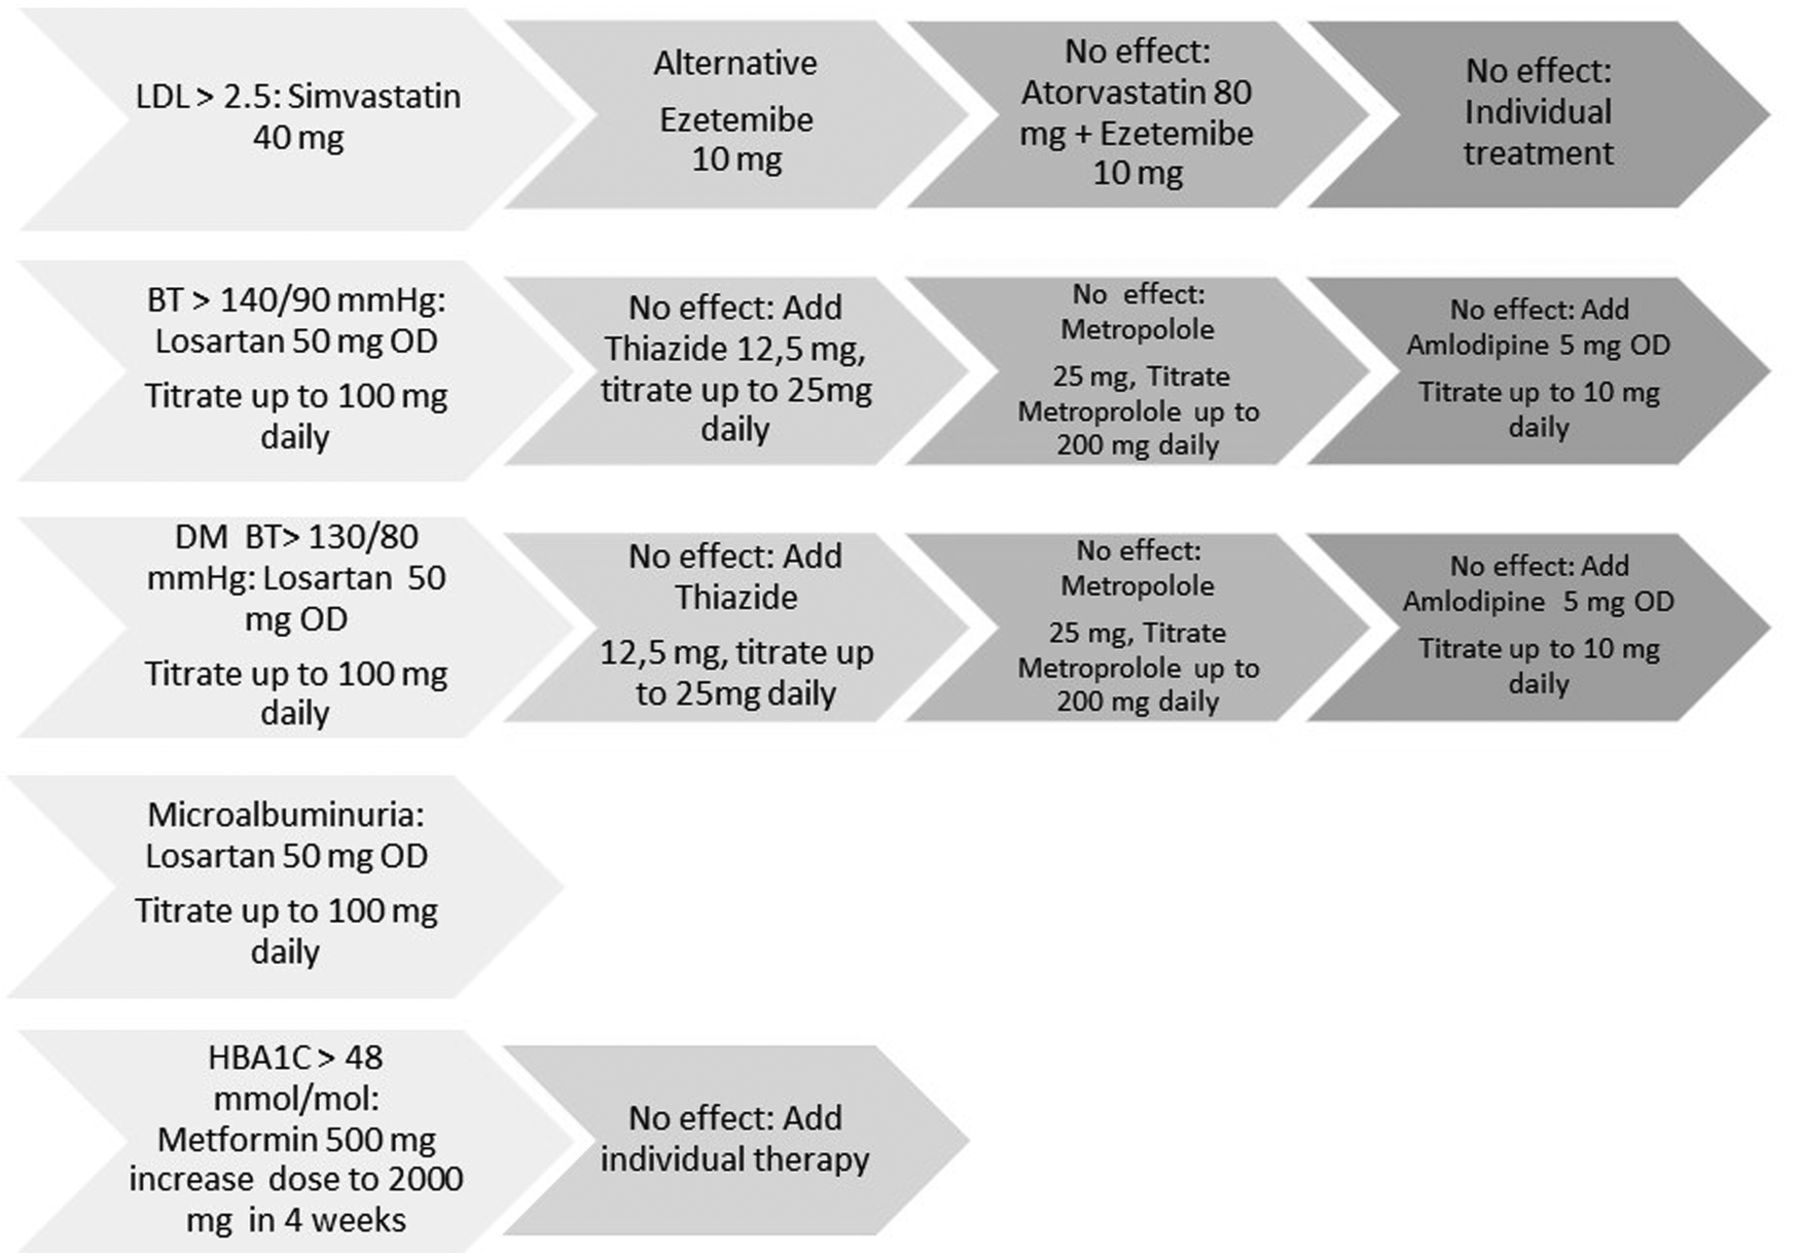 Multifactorial intervention to prevent cardiovascular disease in